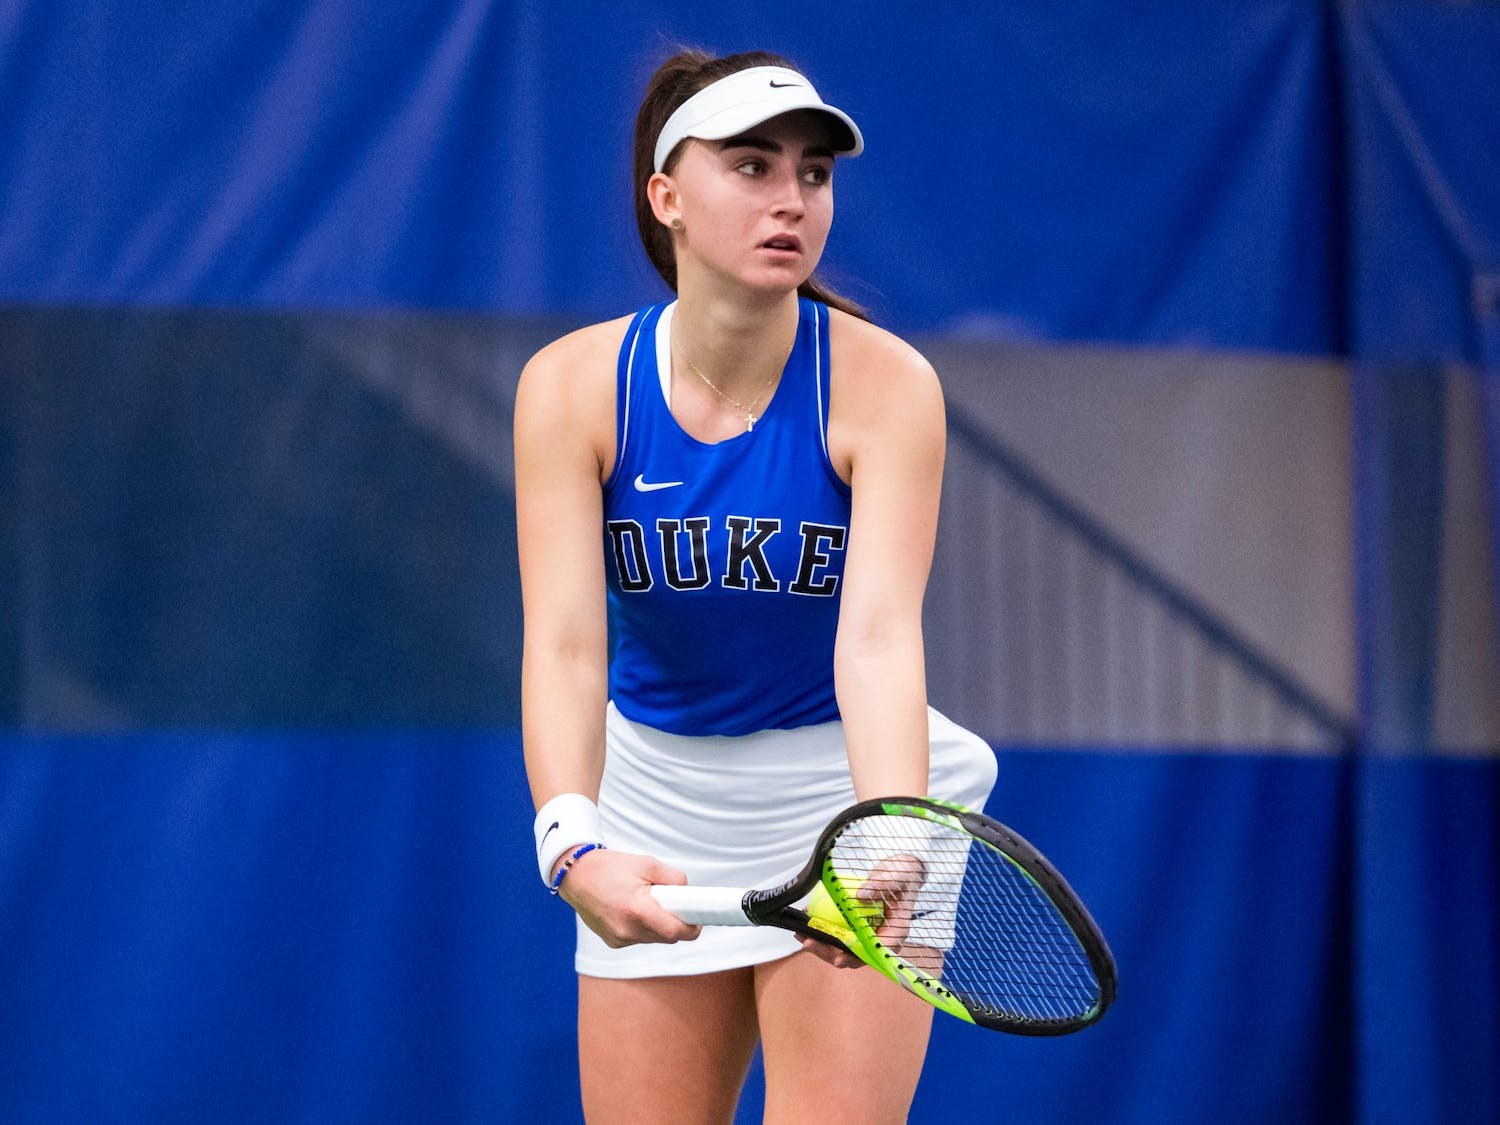 Karolina Berankova enters the season ranked as the No. 6 freshman in the country by the ITA.